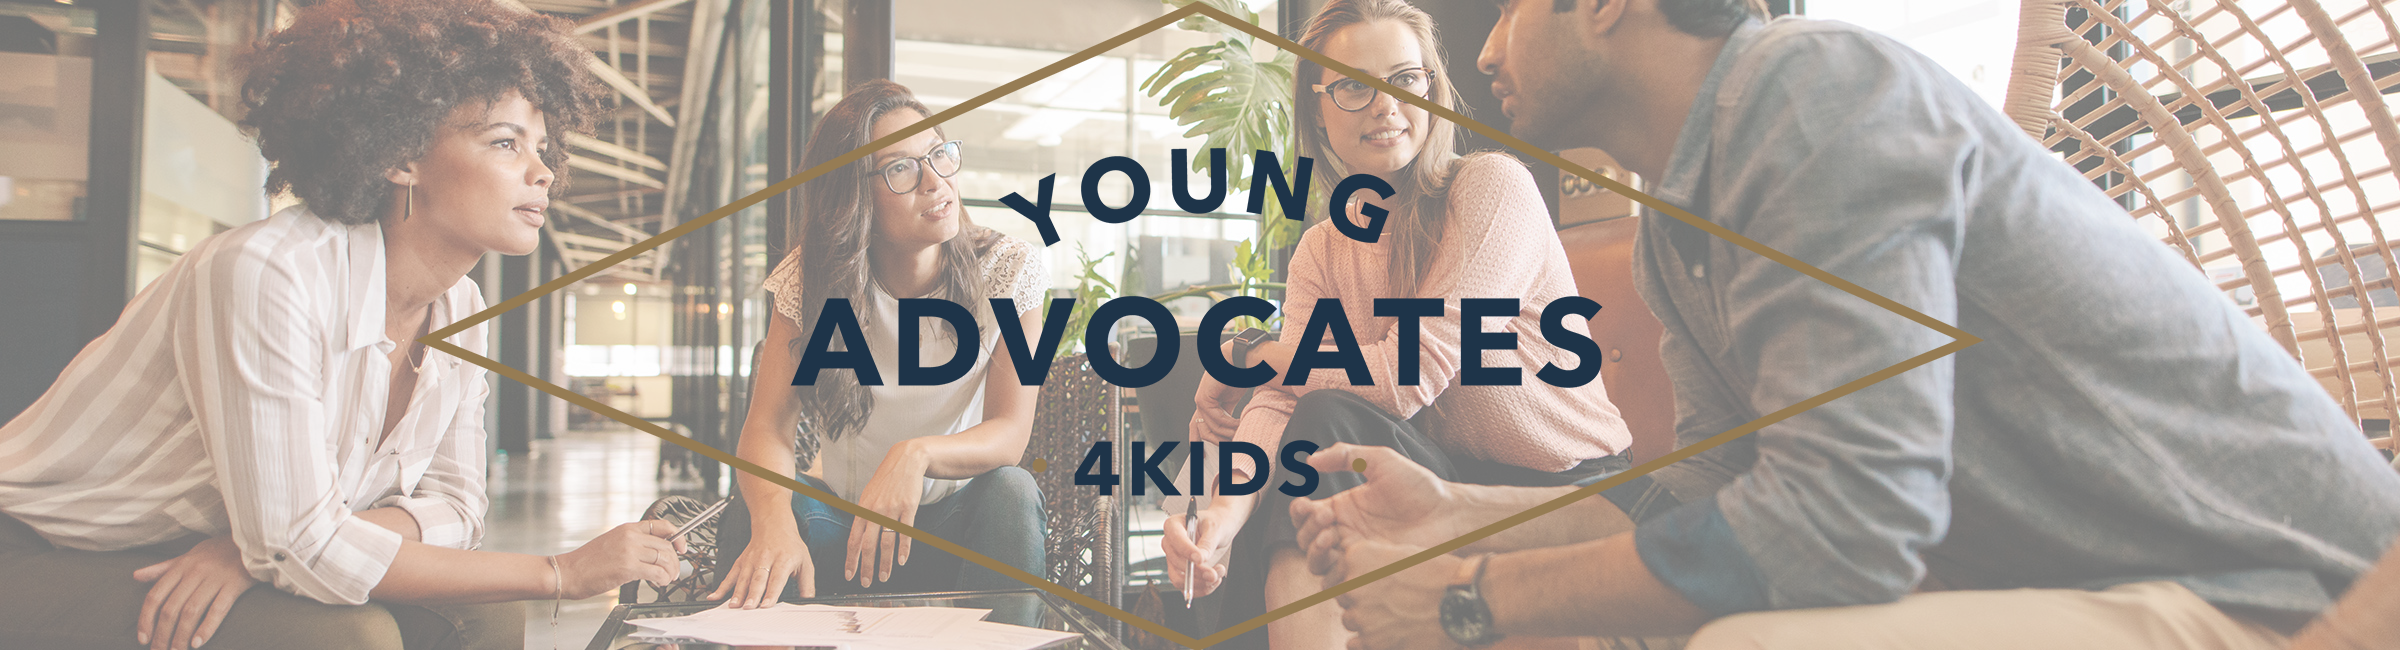 4KIDS Young Advocates